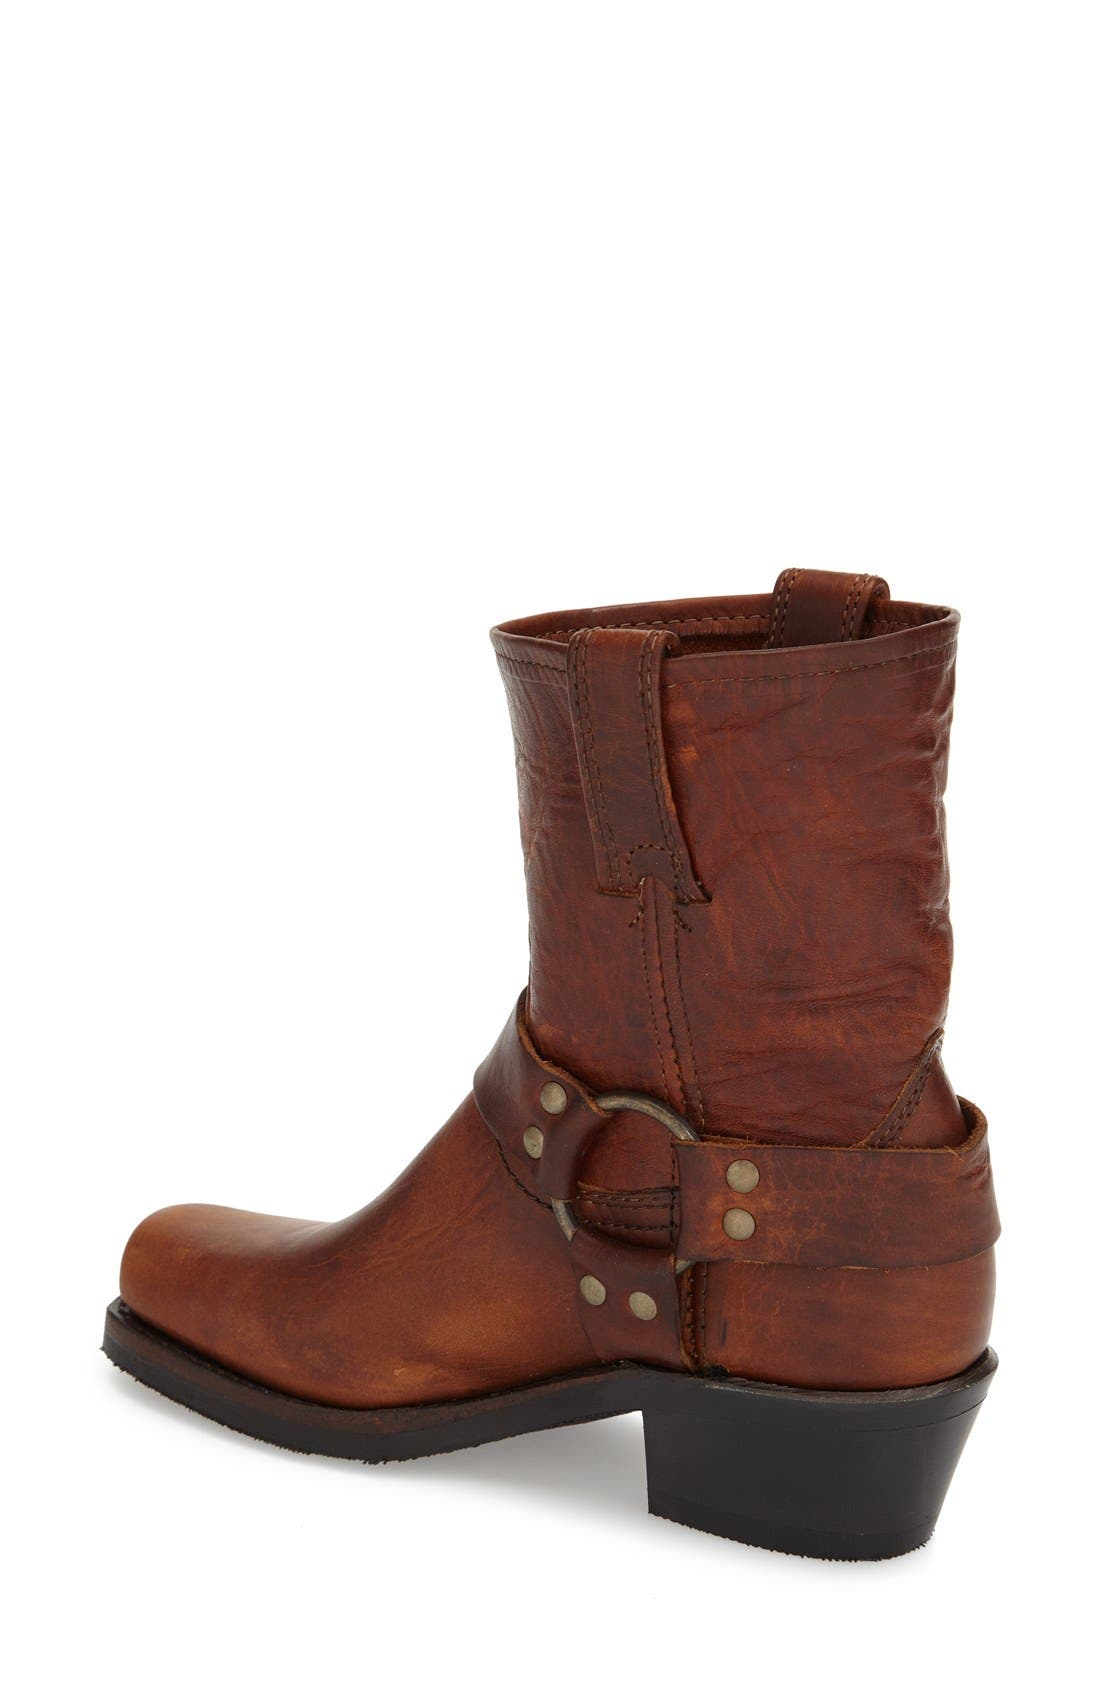 'Harness 8R' Boot,                             Alternate thumbnail 2, color,                             Cognac